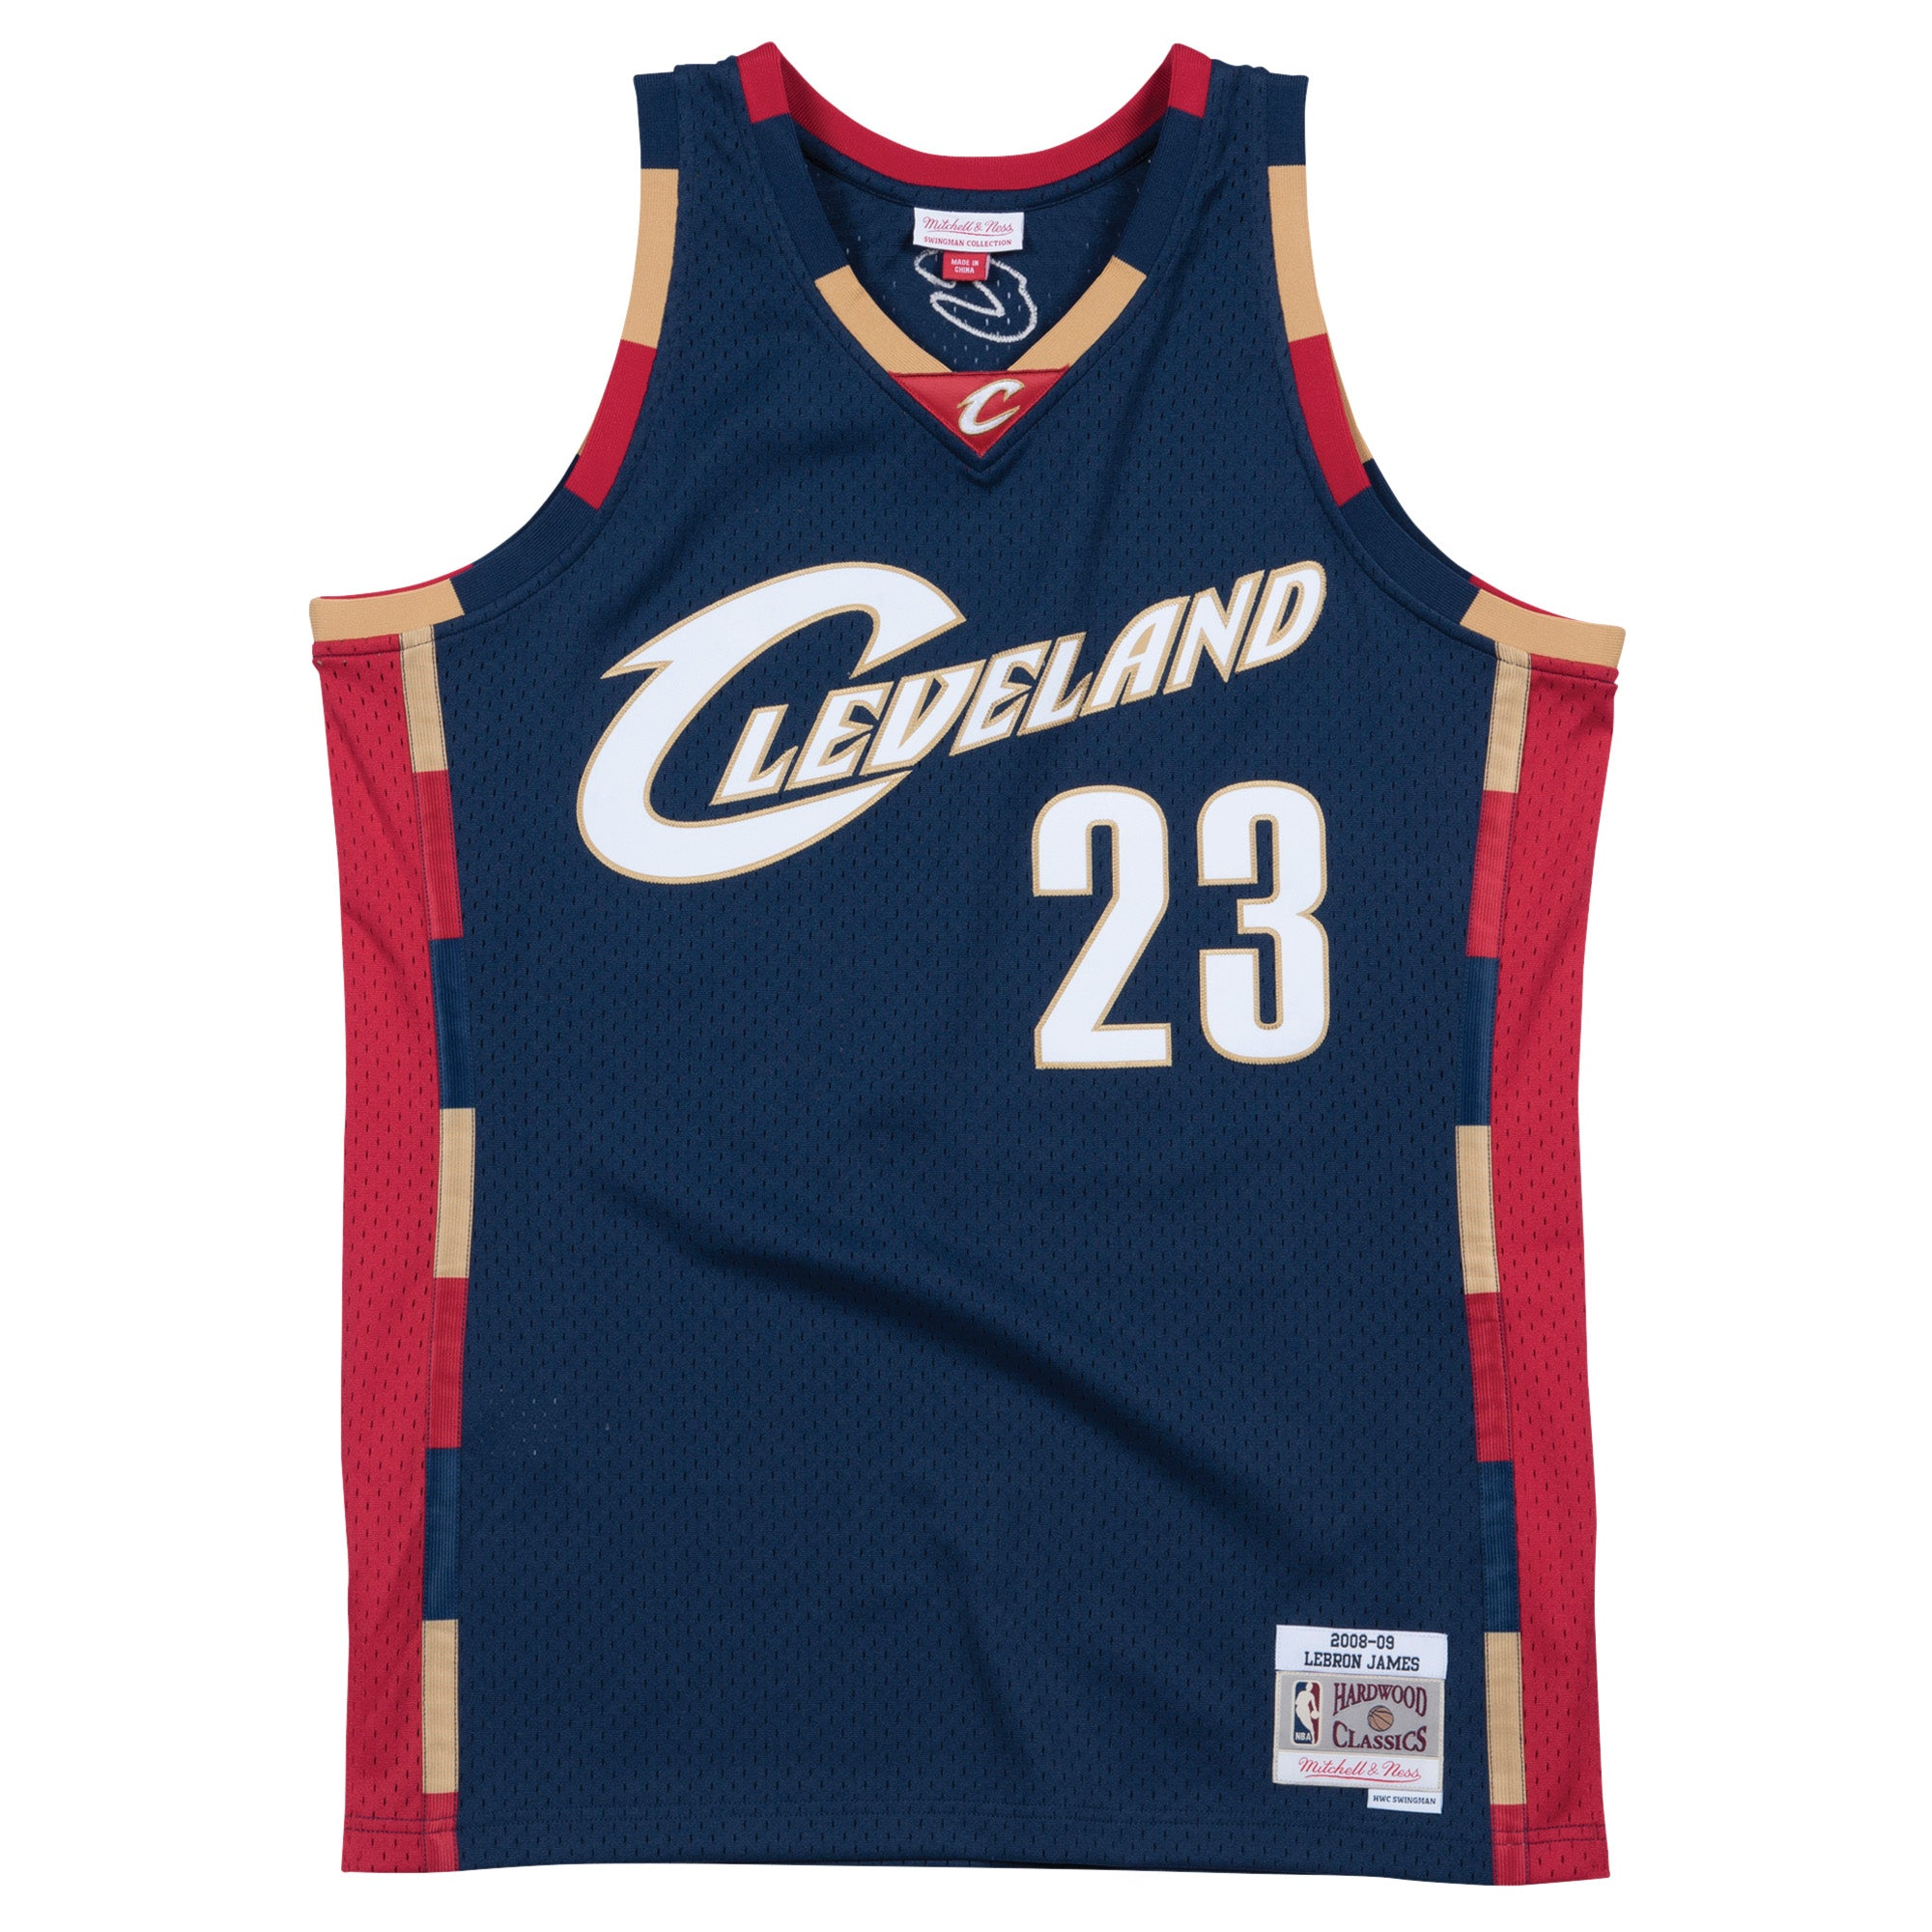 best deals on 5cd69 9c8f3 LeBron James Cleveland Cavaliers Hardwood Classics Throwback NBA Swingman  Jersey